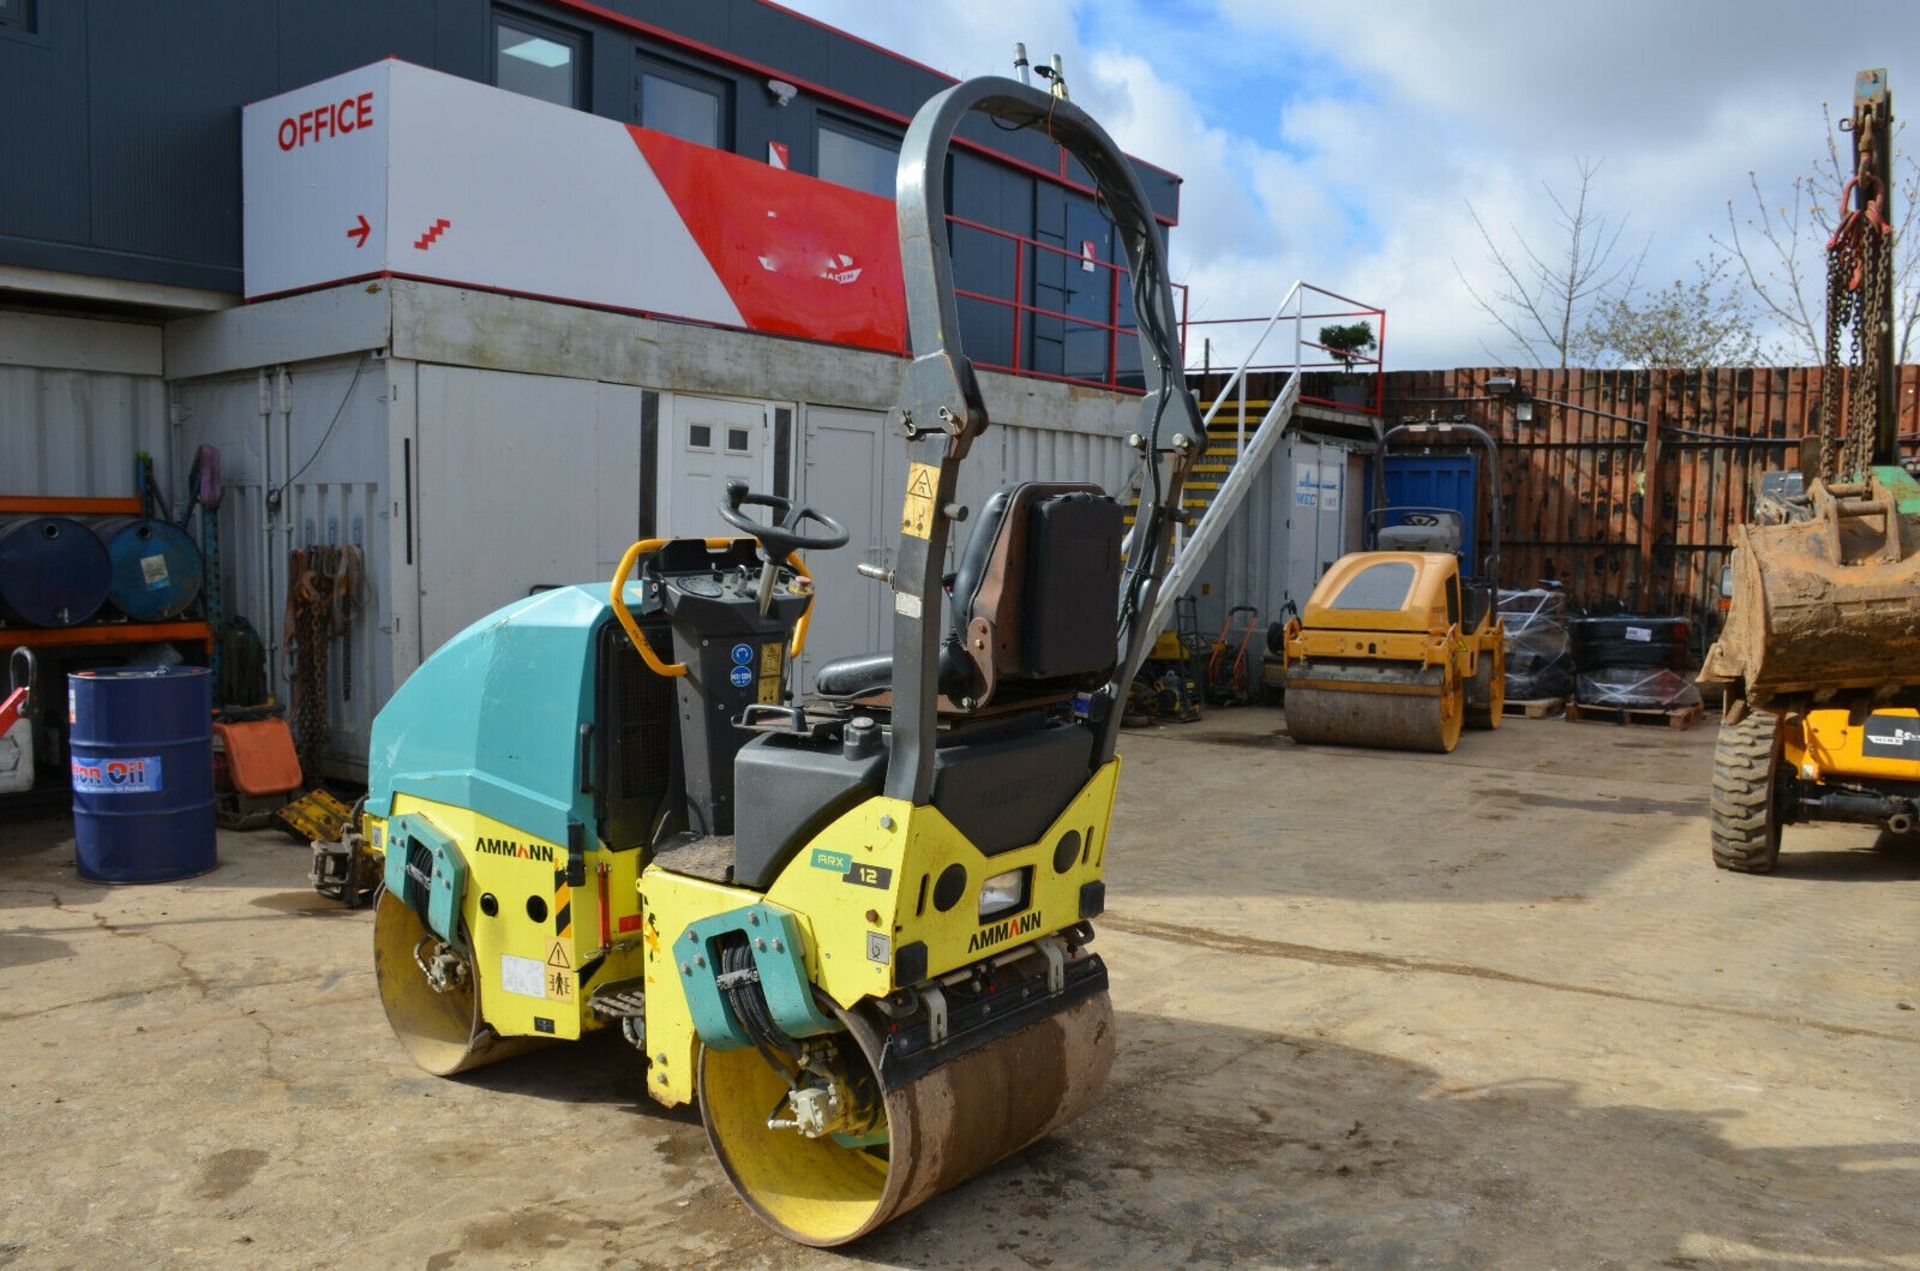 Lot 91 - Ammann ARX12 Double Drum Vibrating Roller